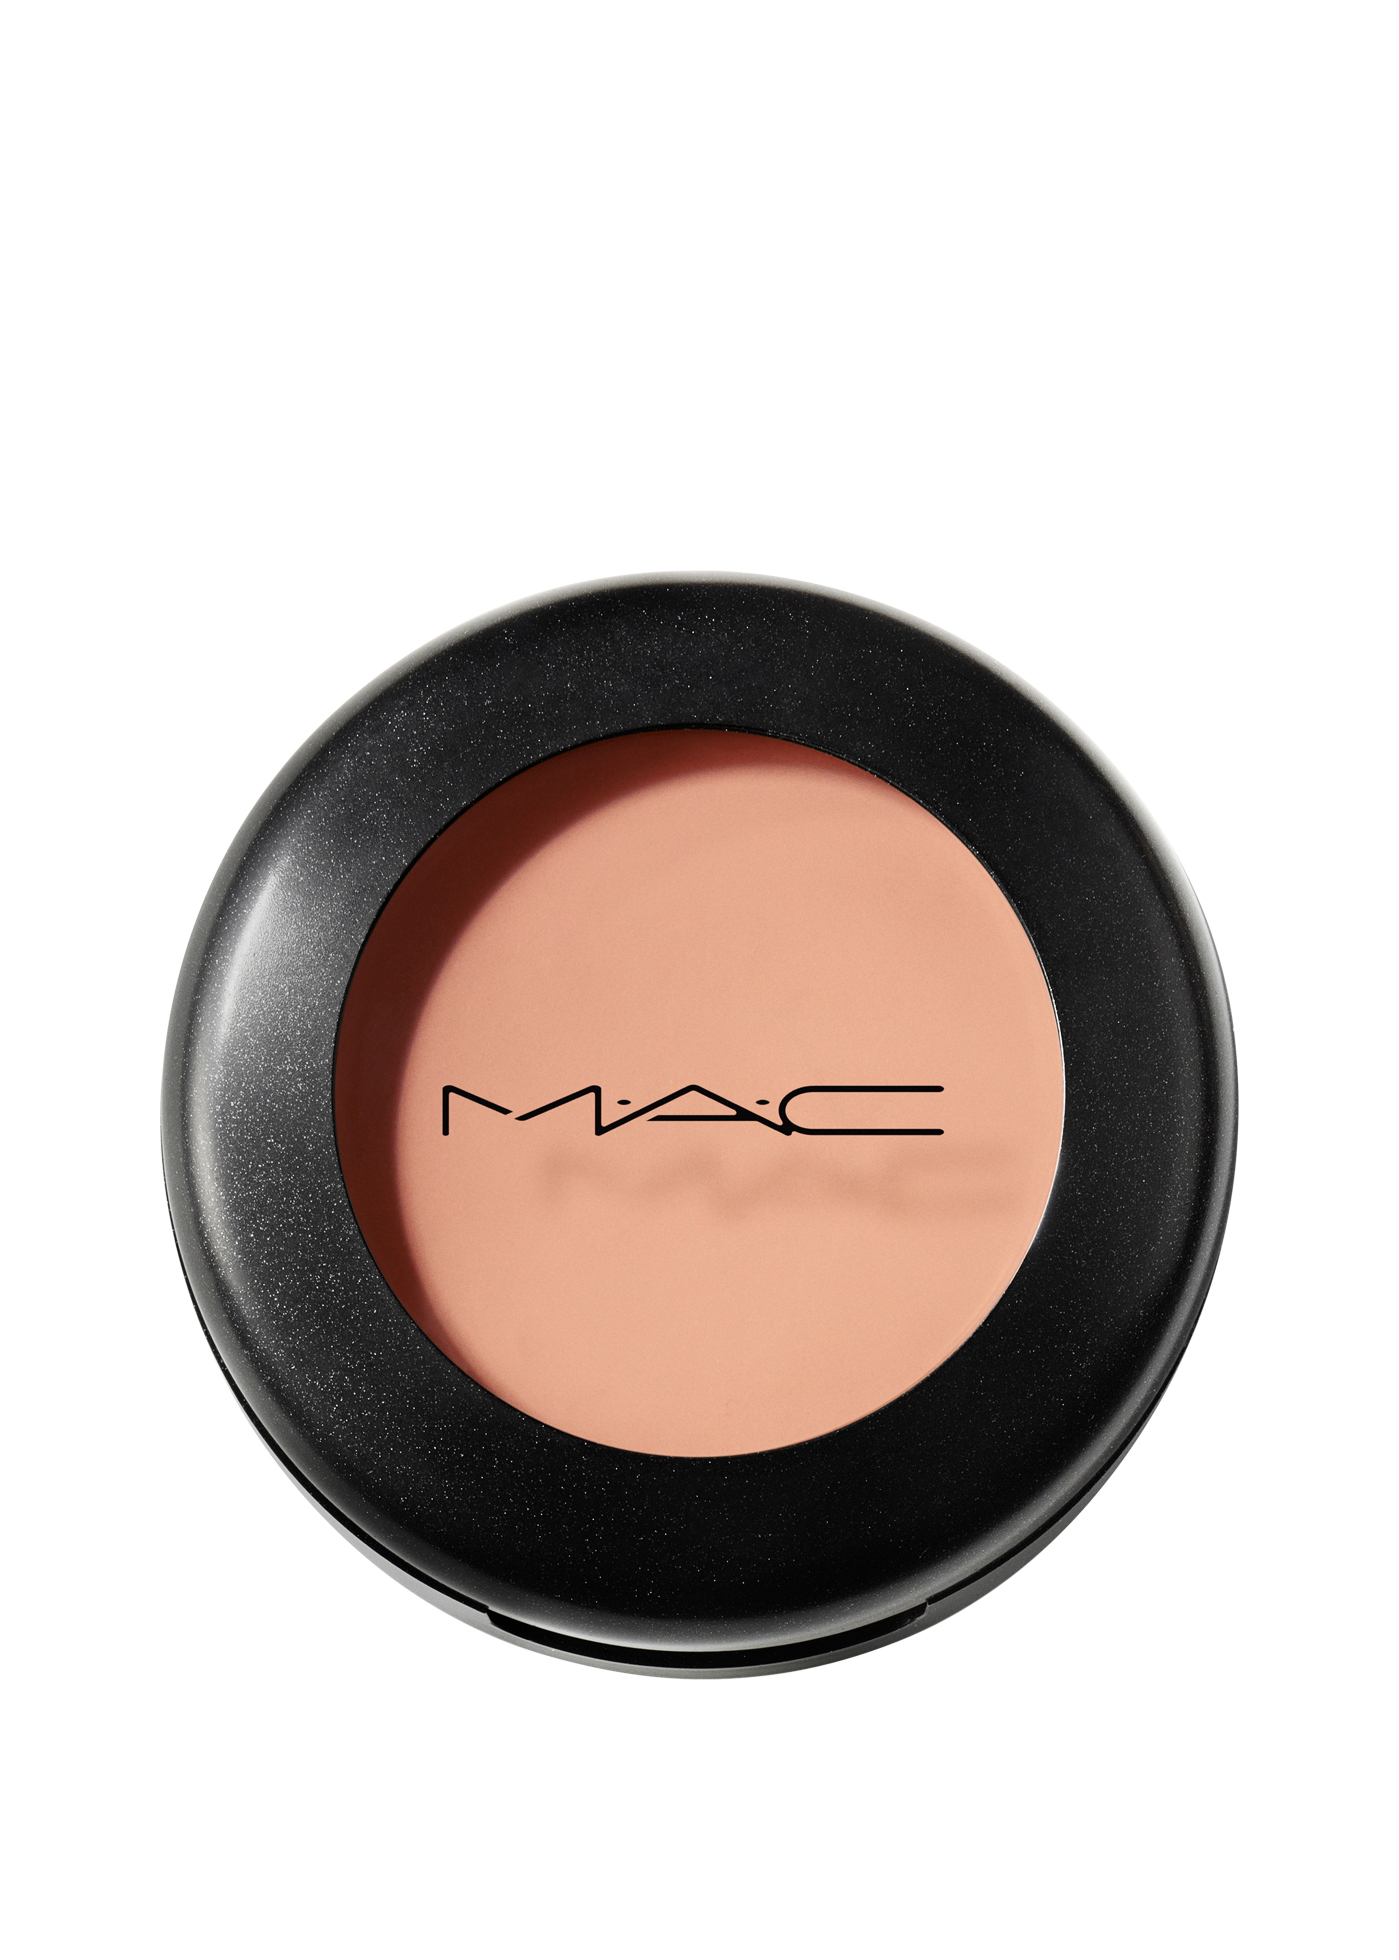 Studio Finish SPF 35 Concealer (Shade Extensions)W10 image number 1